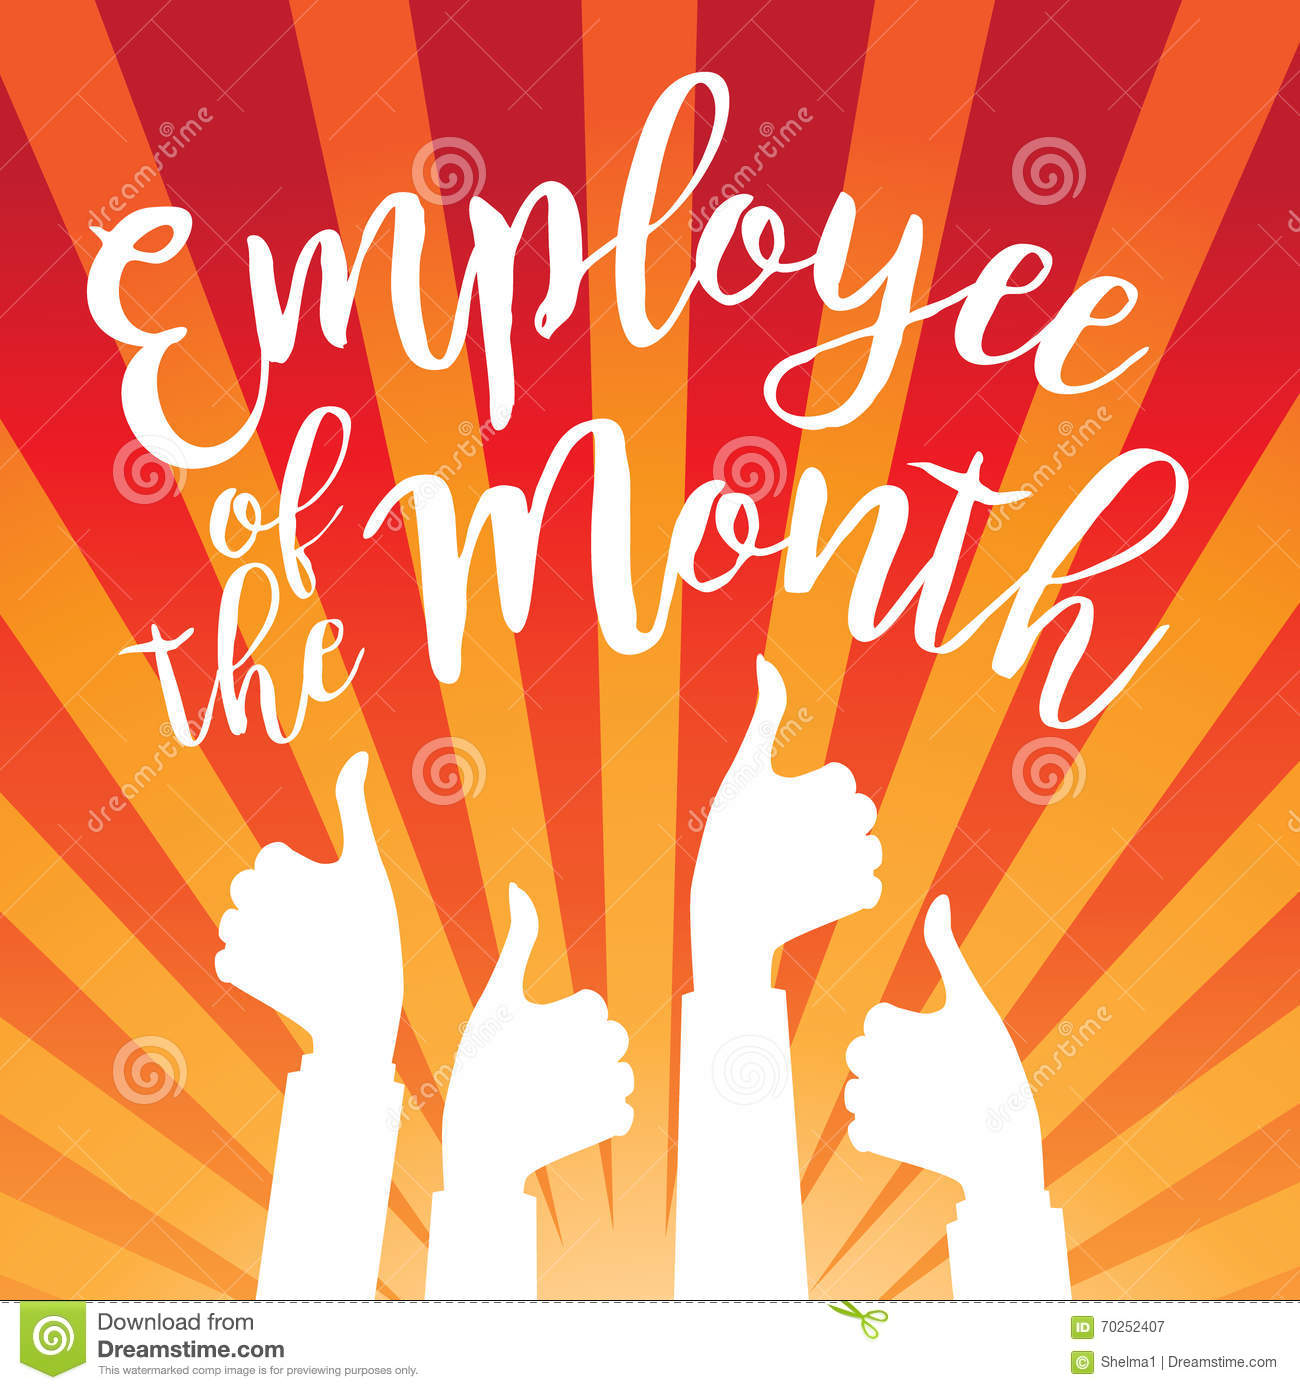 Employee Of The Month Poster Frame Stock Vector - Image: 64536321 image download